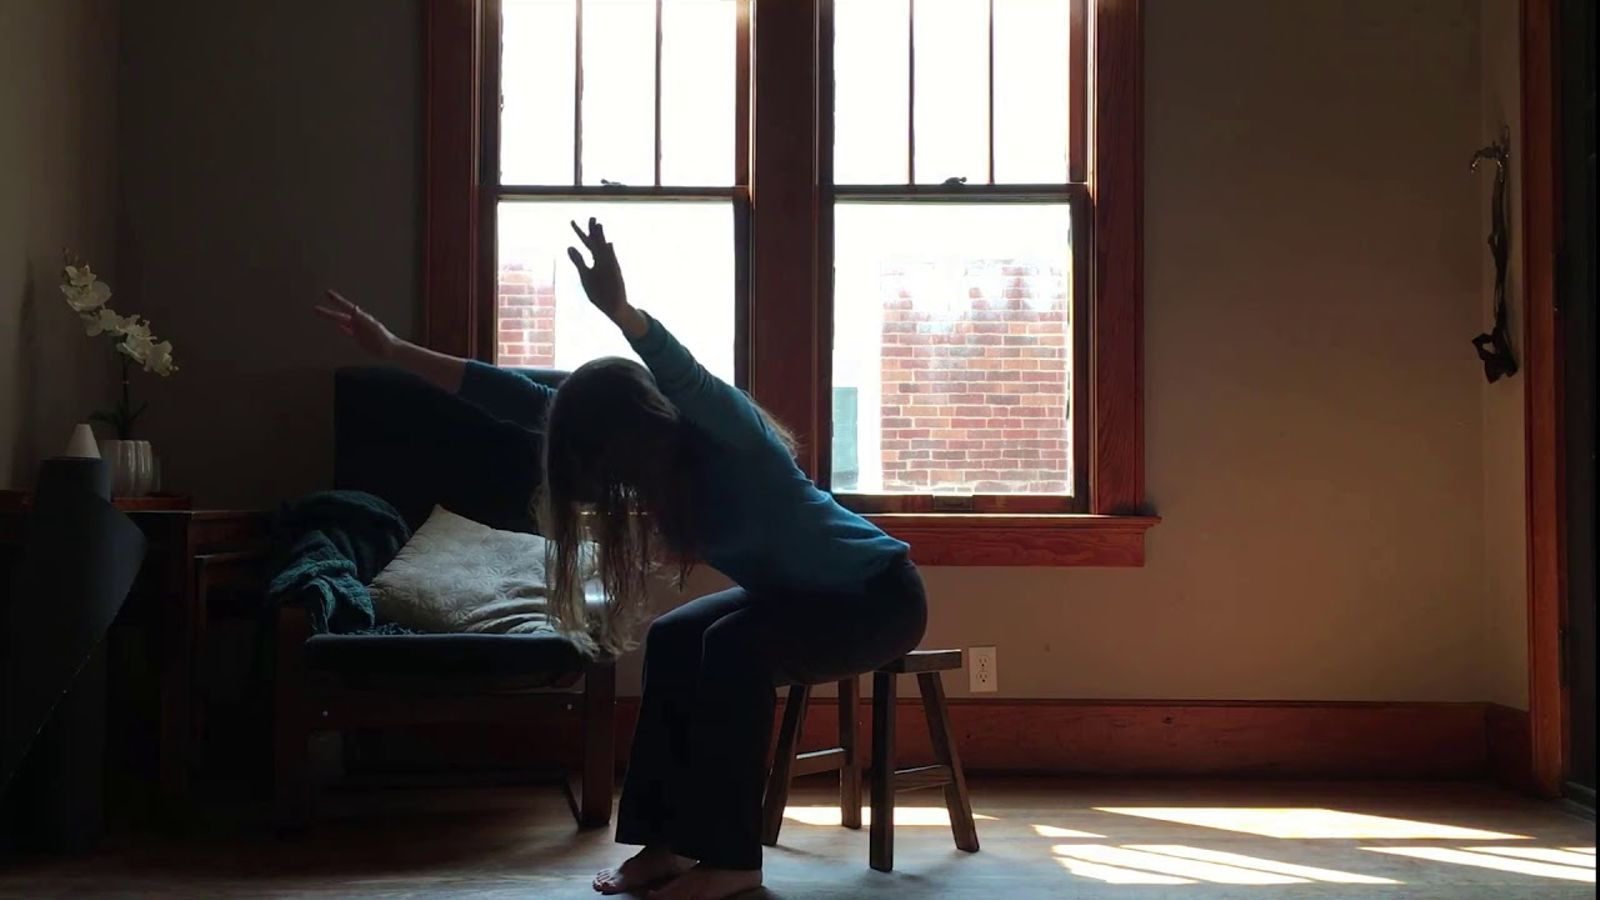 First Yoga Practice - A short, simple yoga and meditation practice with the first techniques I teach new yoga students. A calming and ground class in five minutes.